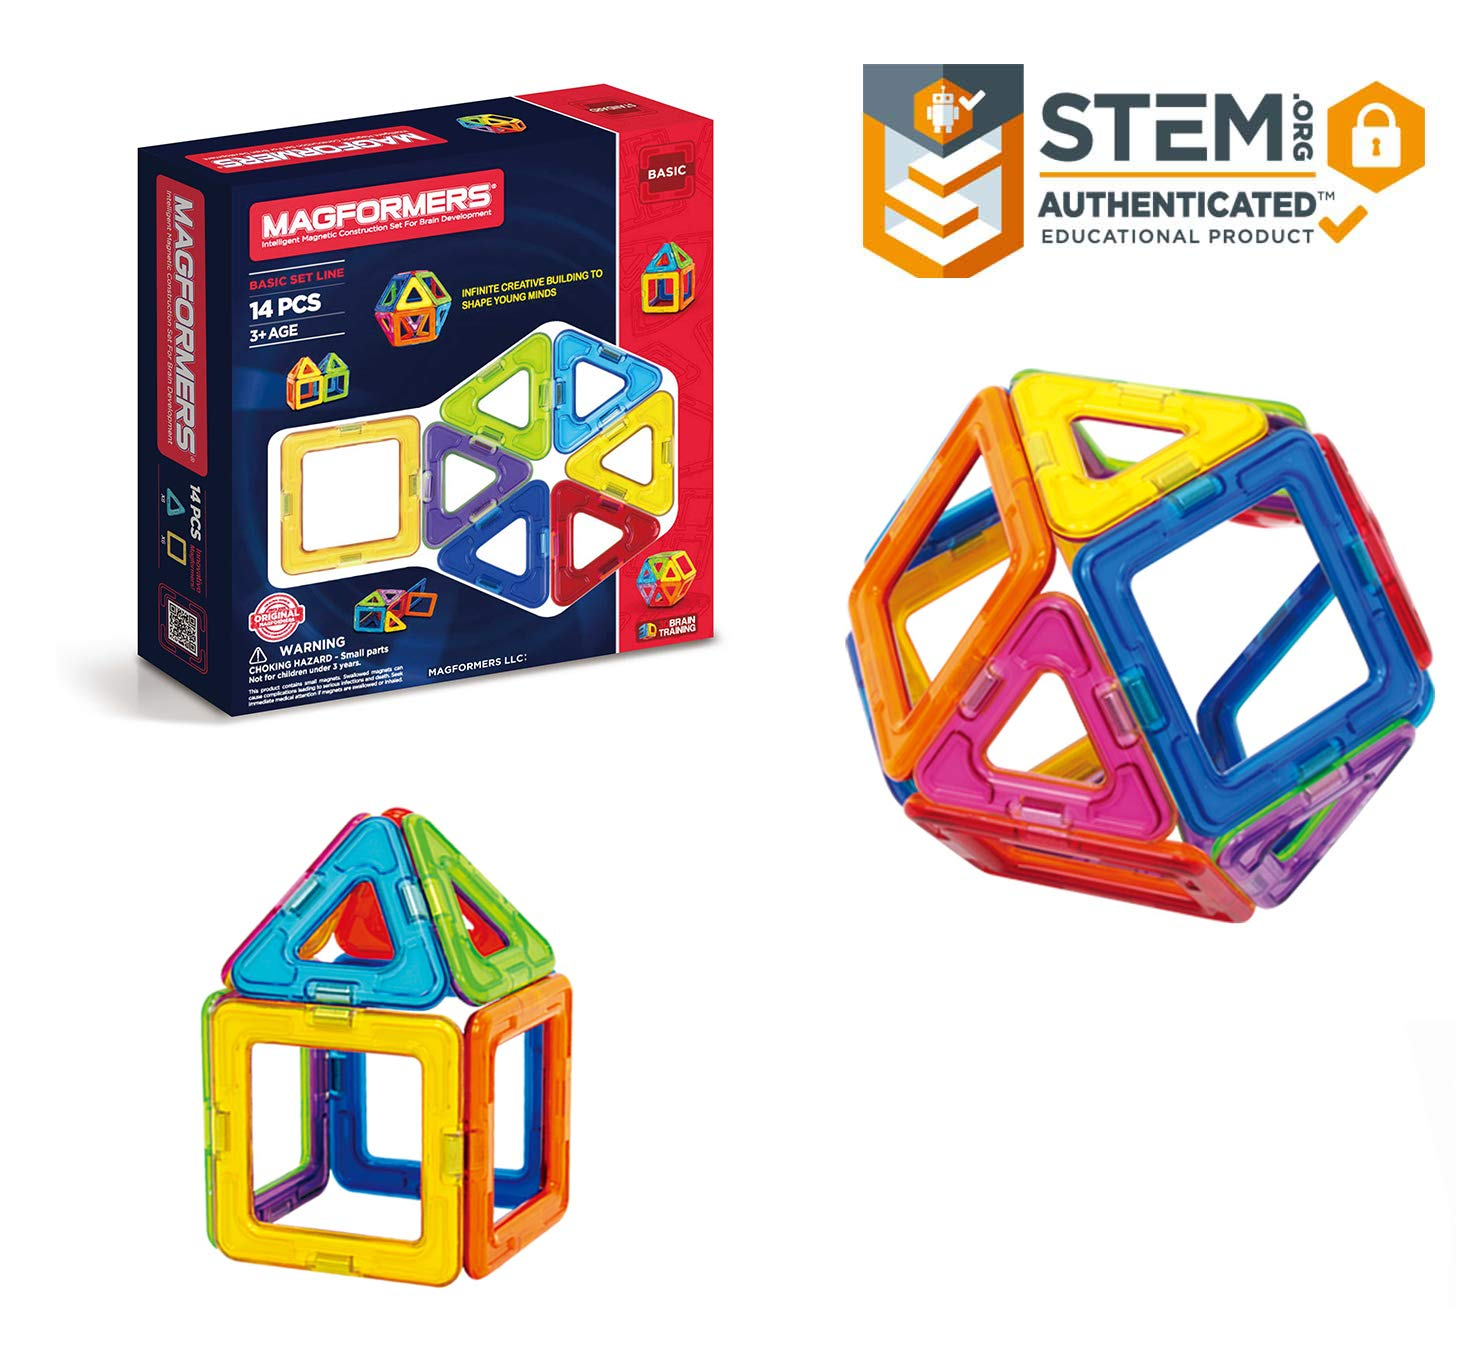 Magformers 14-Piece Set for $1...